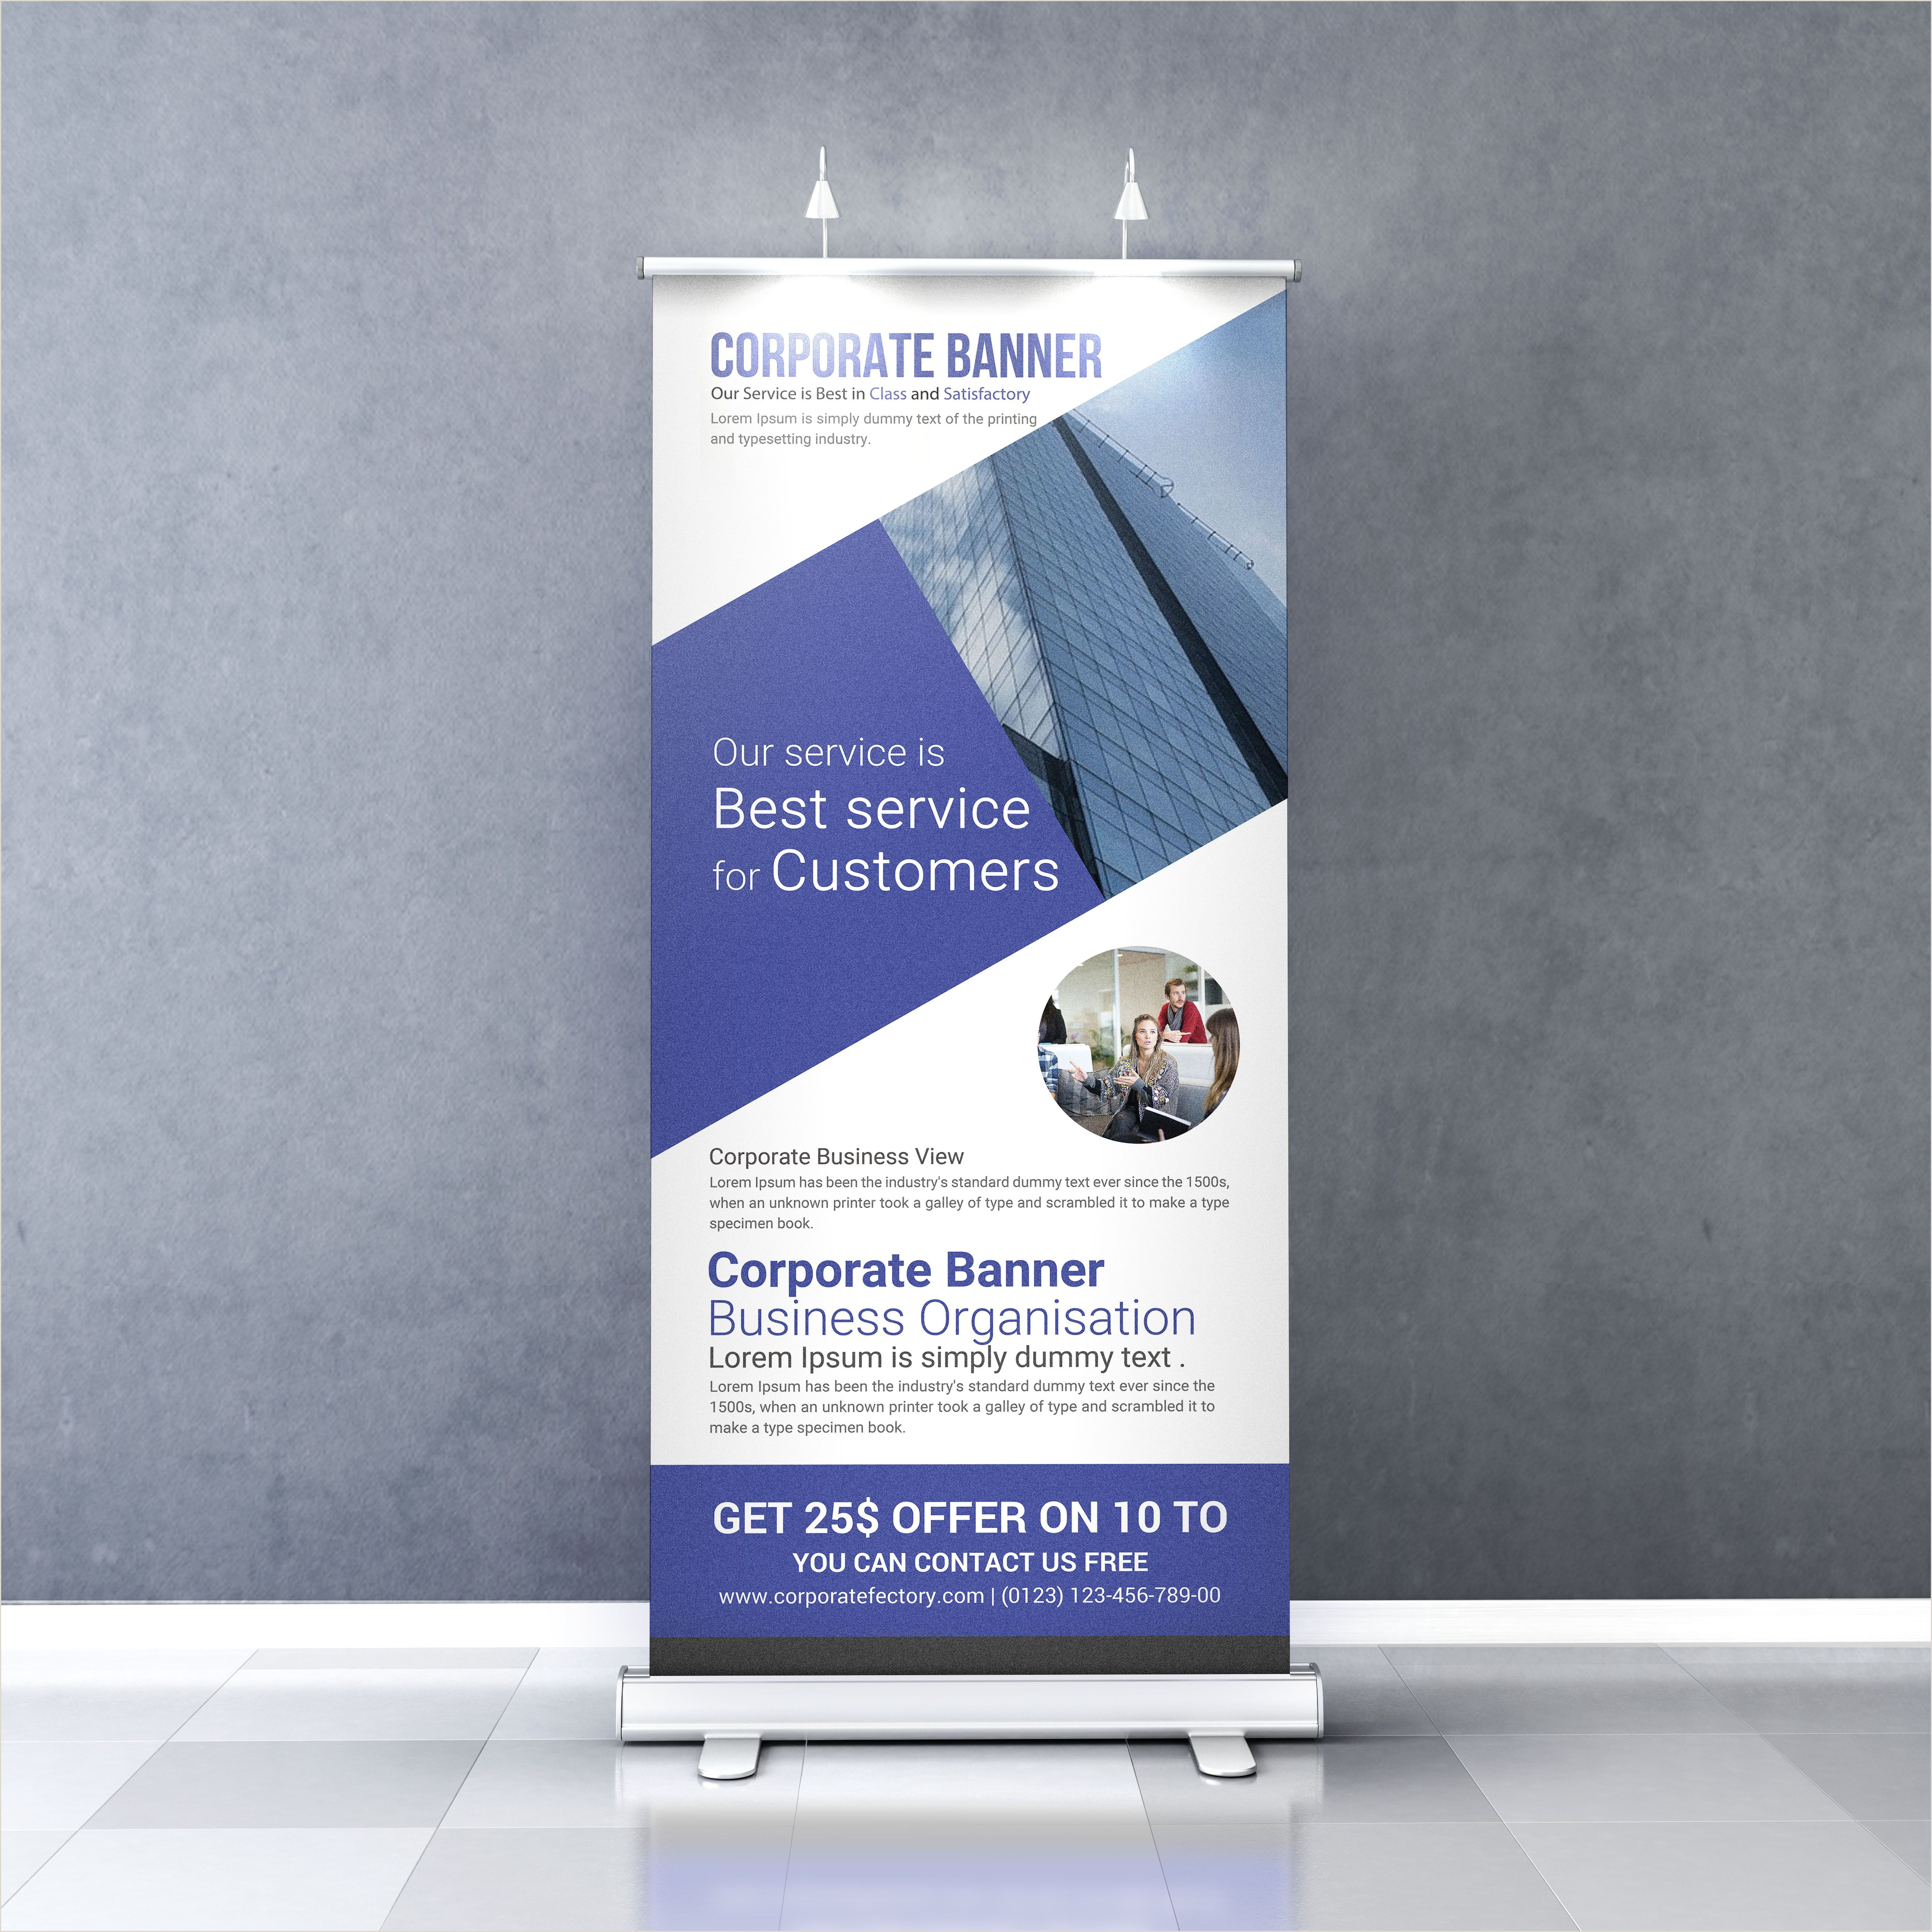 Pop Up Banner Examples Background Roll Up Banner Design Template Free Download